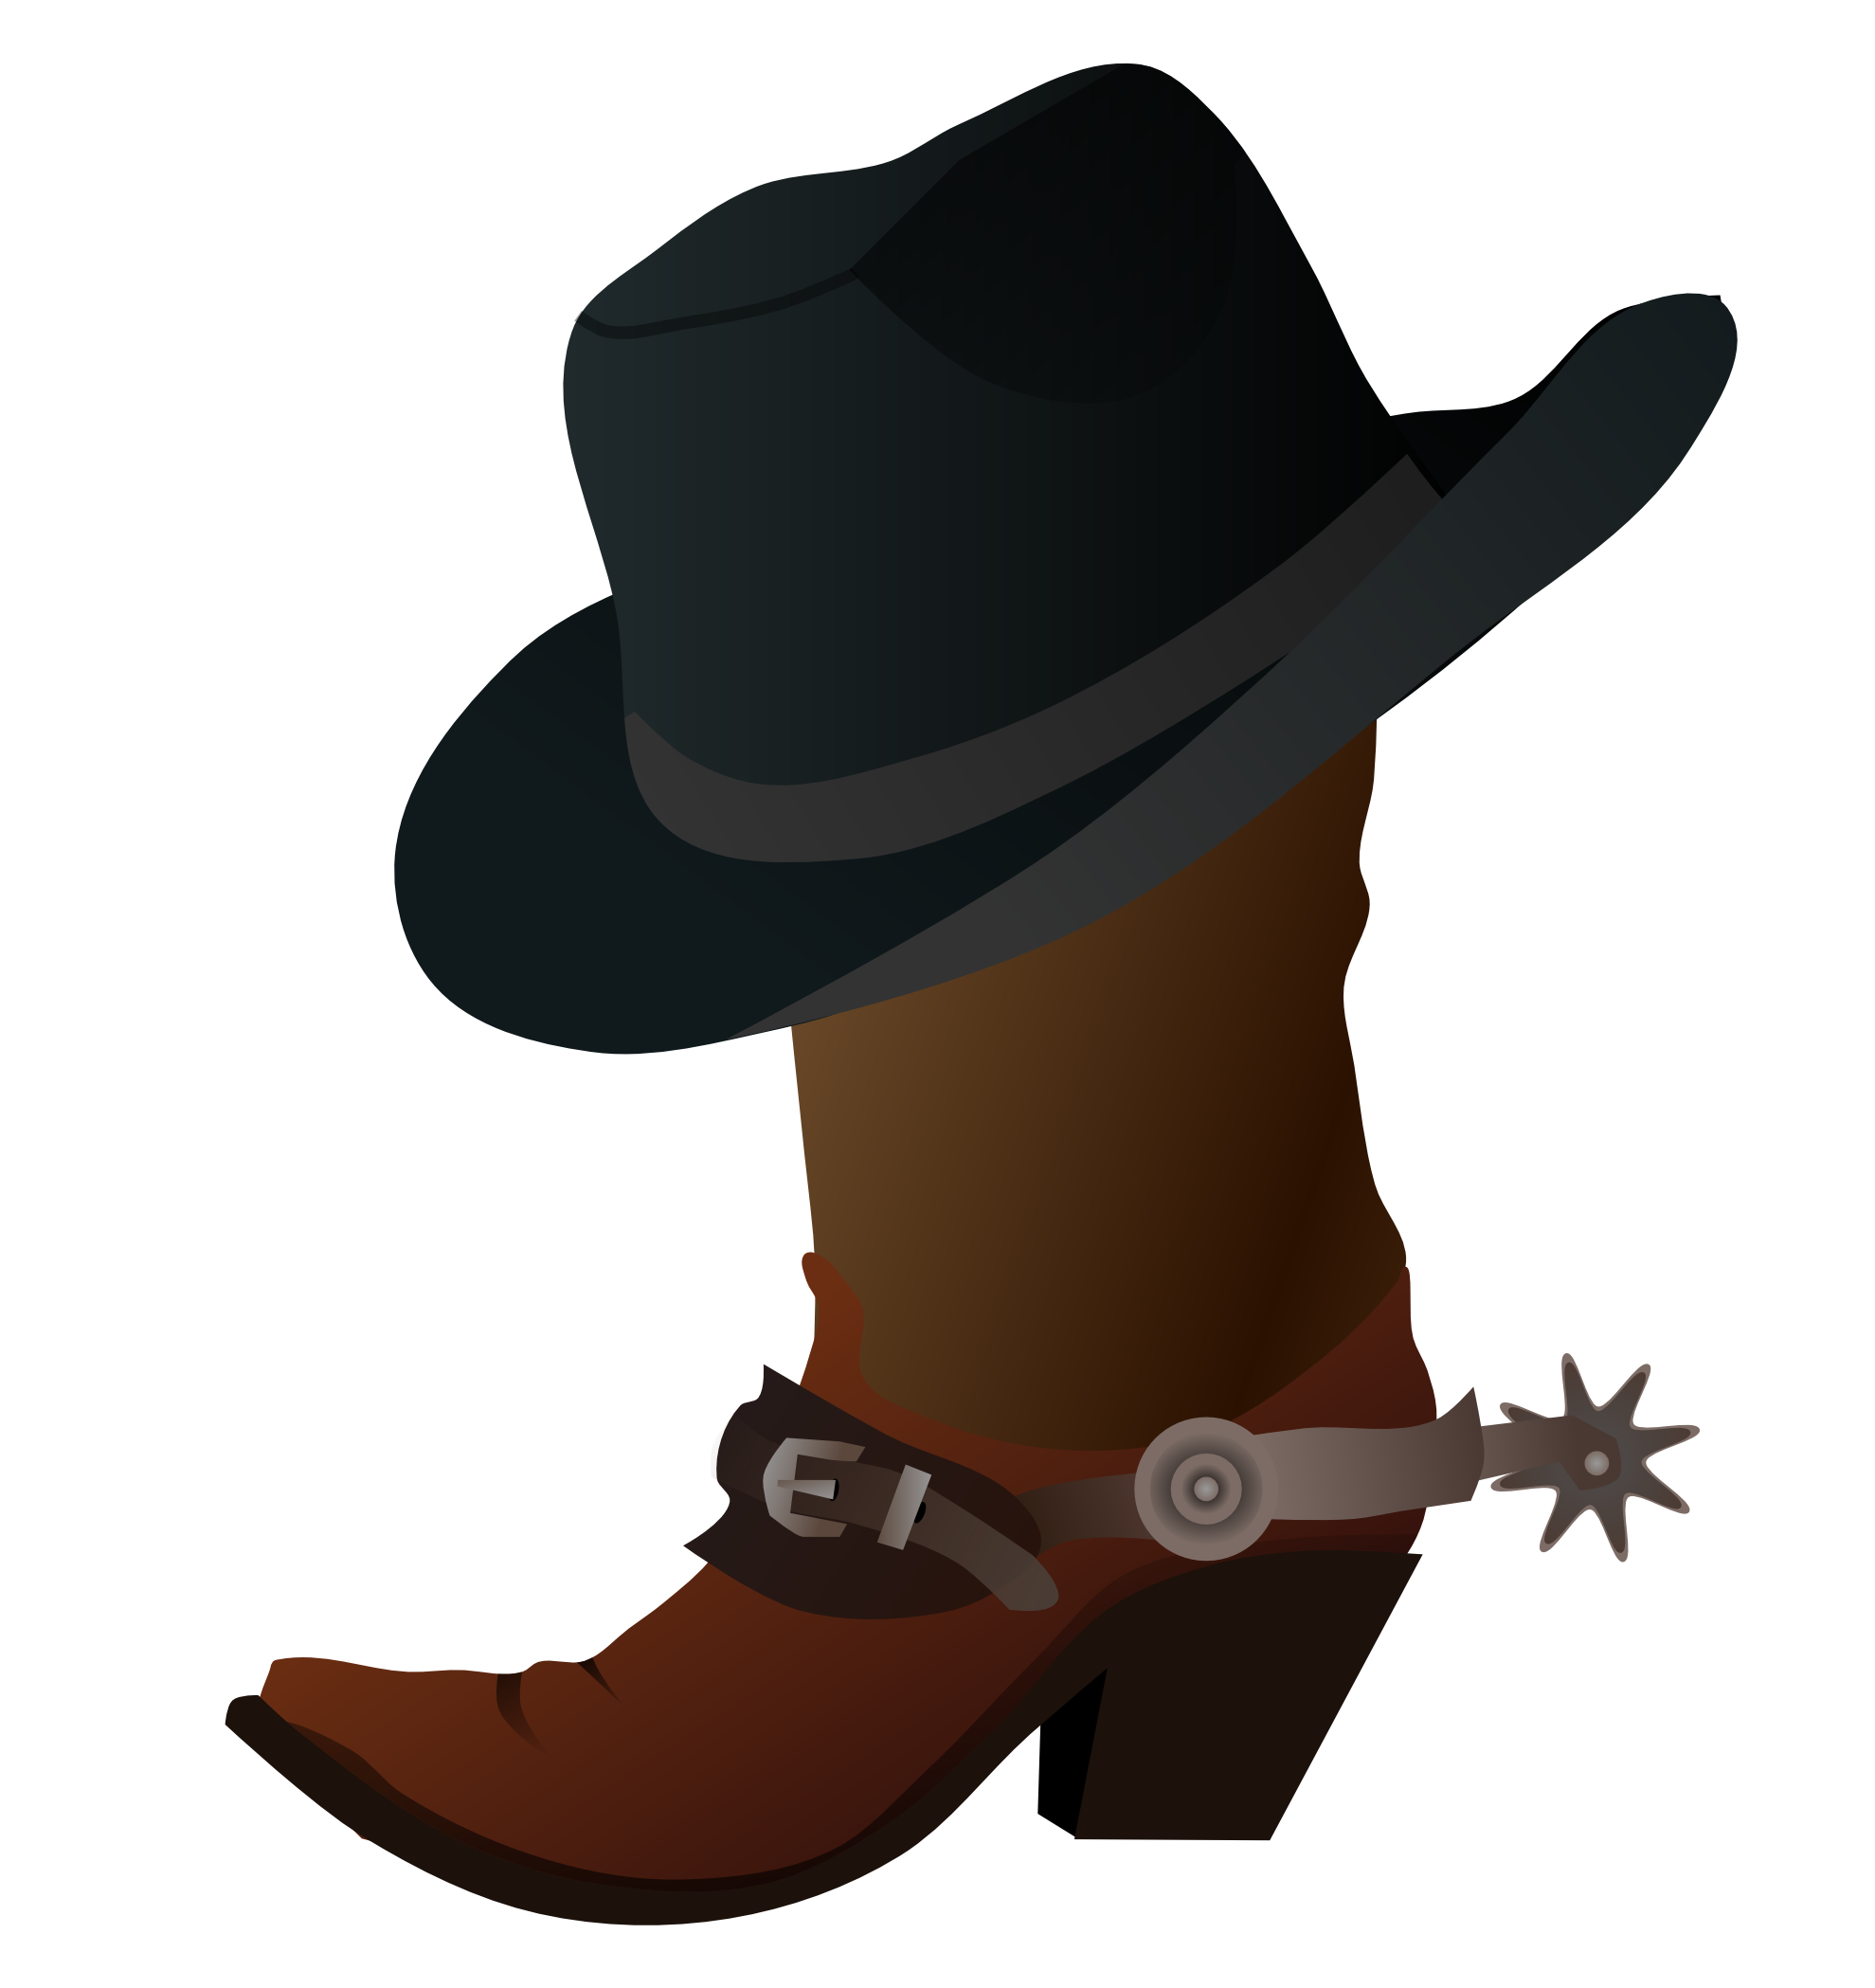 Coloring Cowboy Boot - ClipArt Best